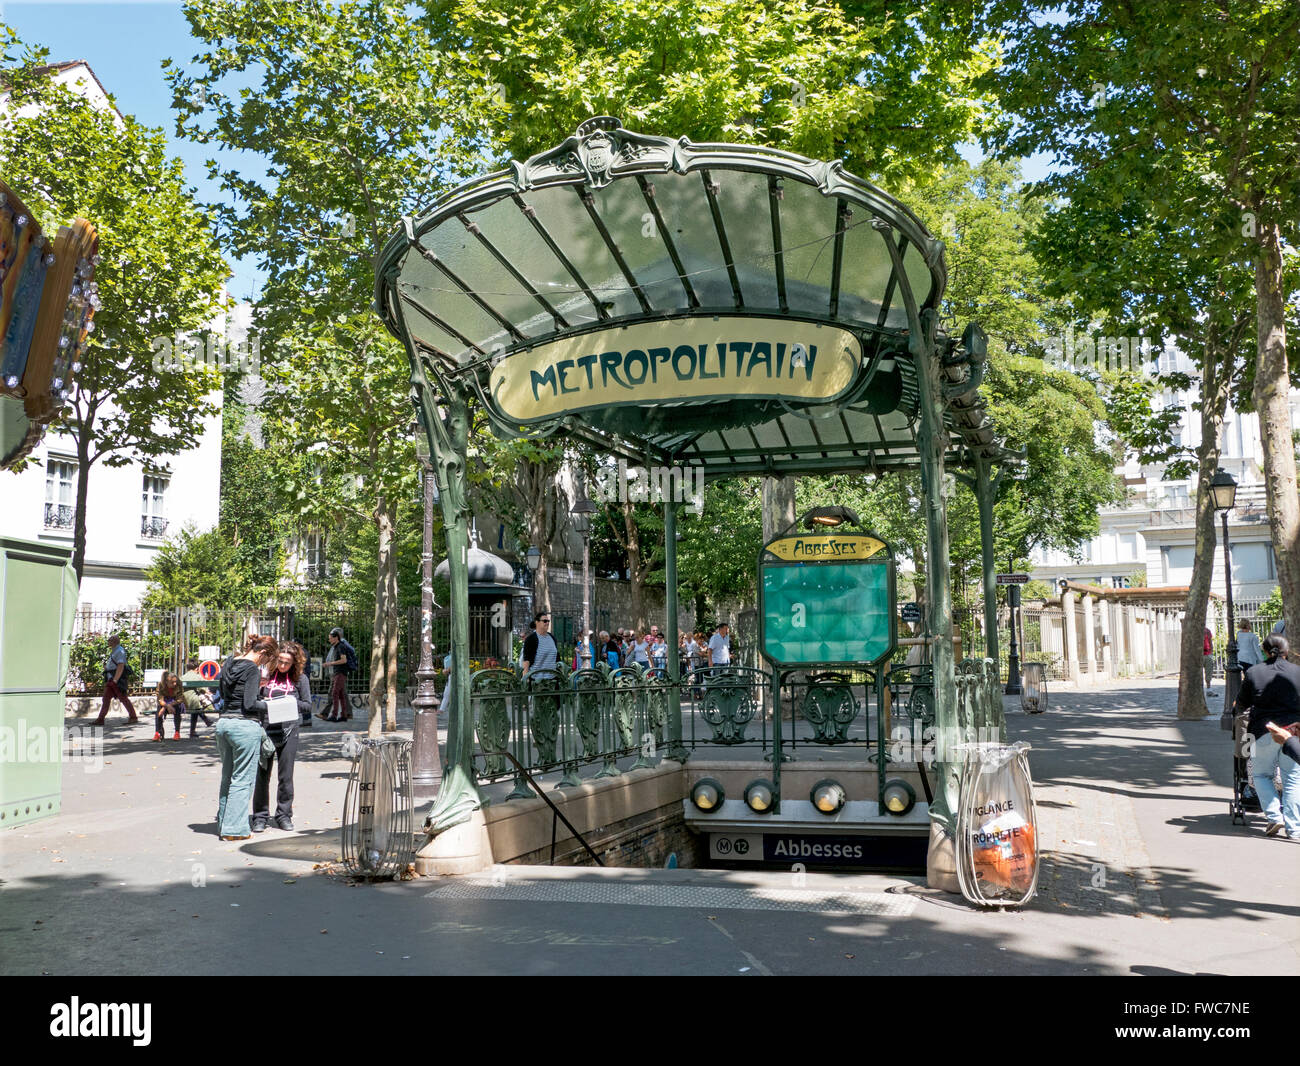 A conserved canopied Art Nouveau metro entrance designed by Hector Guimard, Place des Abbesses, Montmartre, Paris, - Stock Image